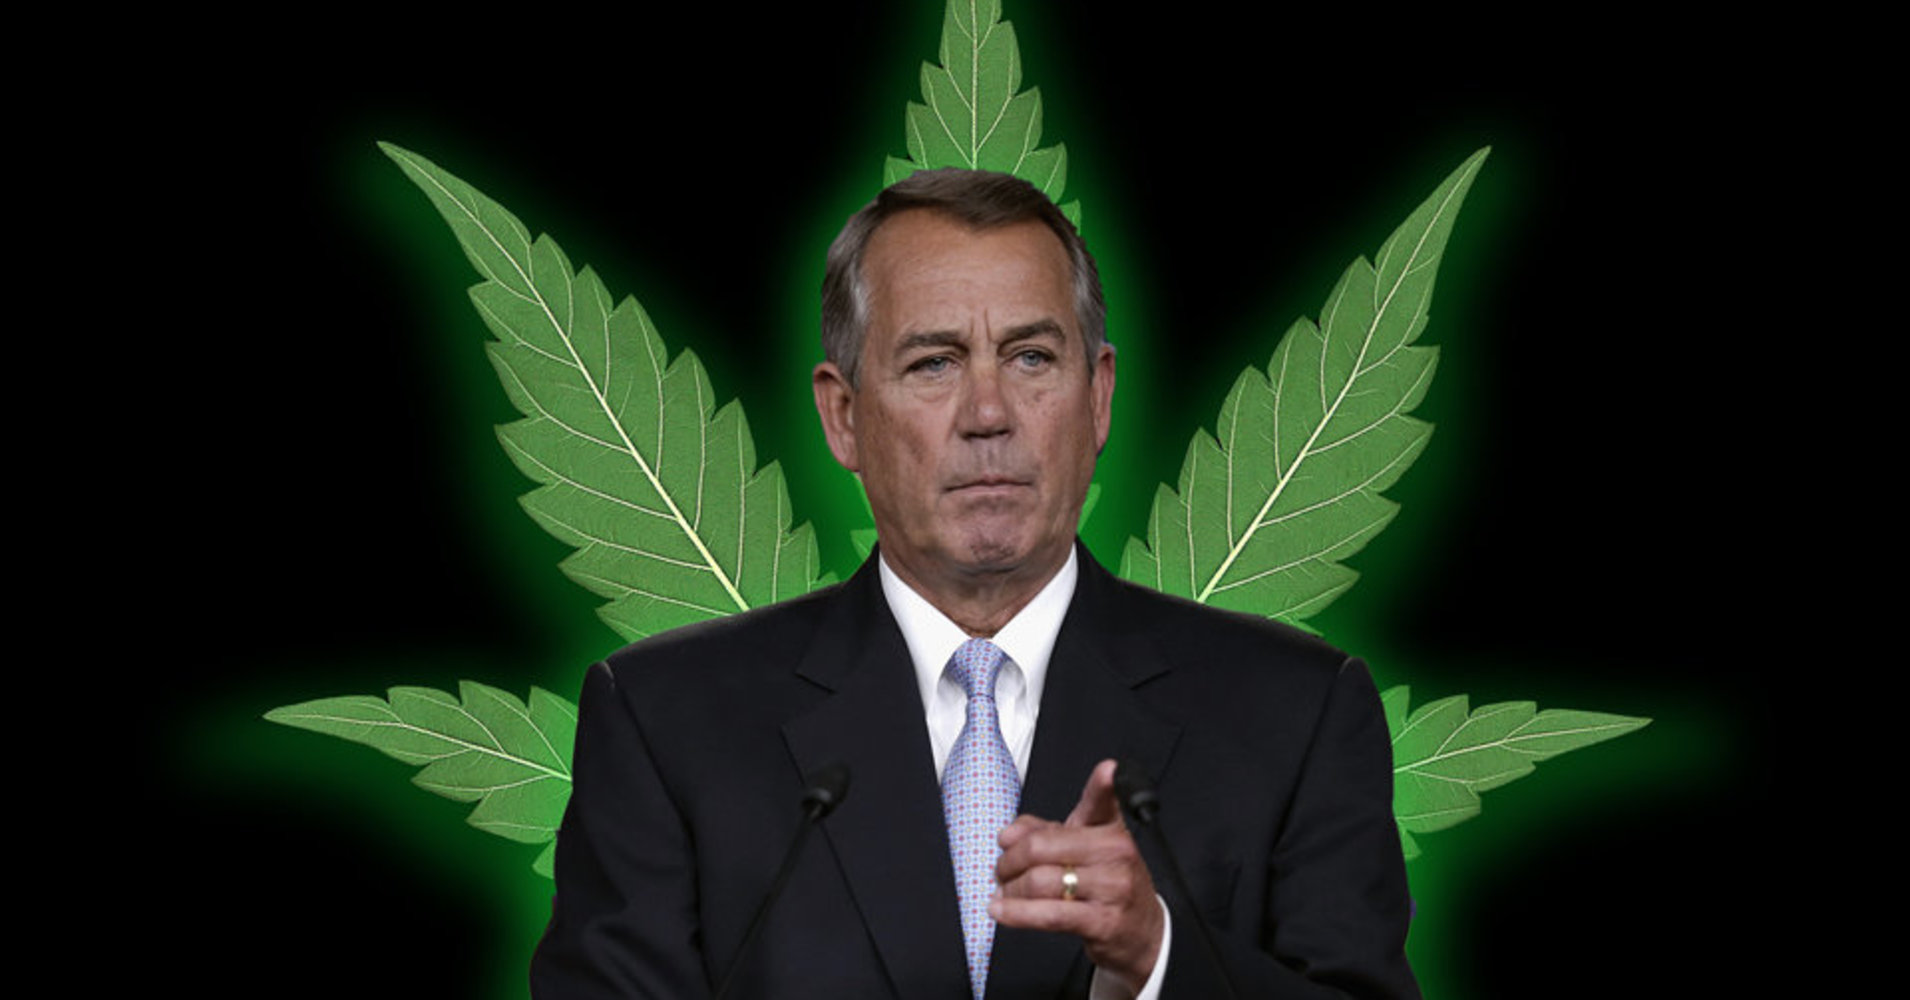 John Boehner Now Lobbying For Medical Marijuana